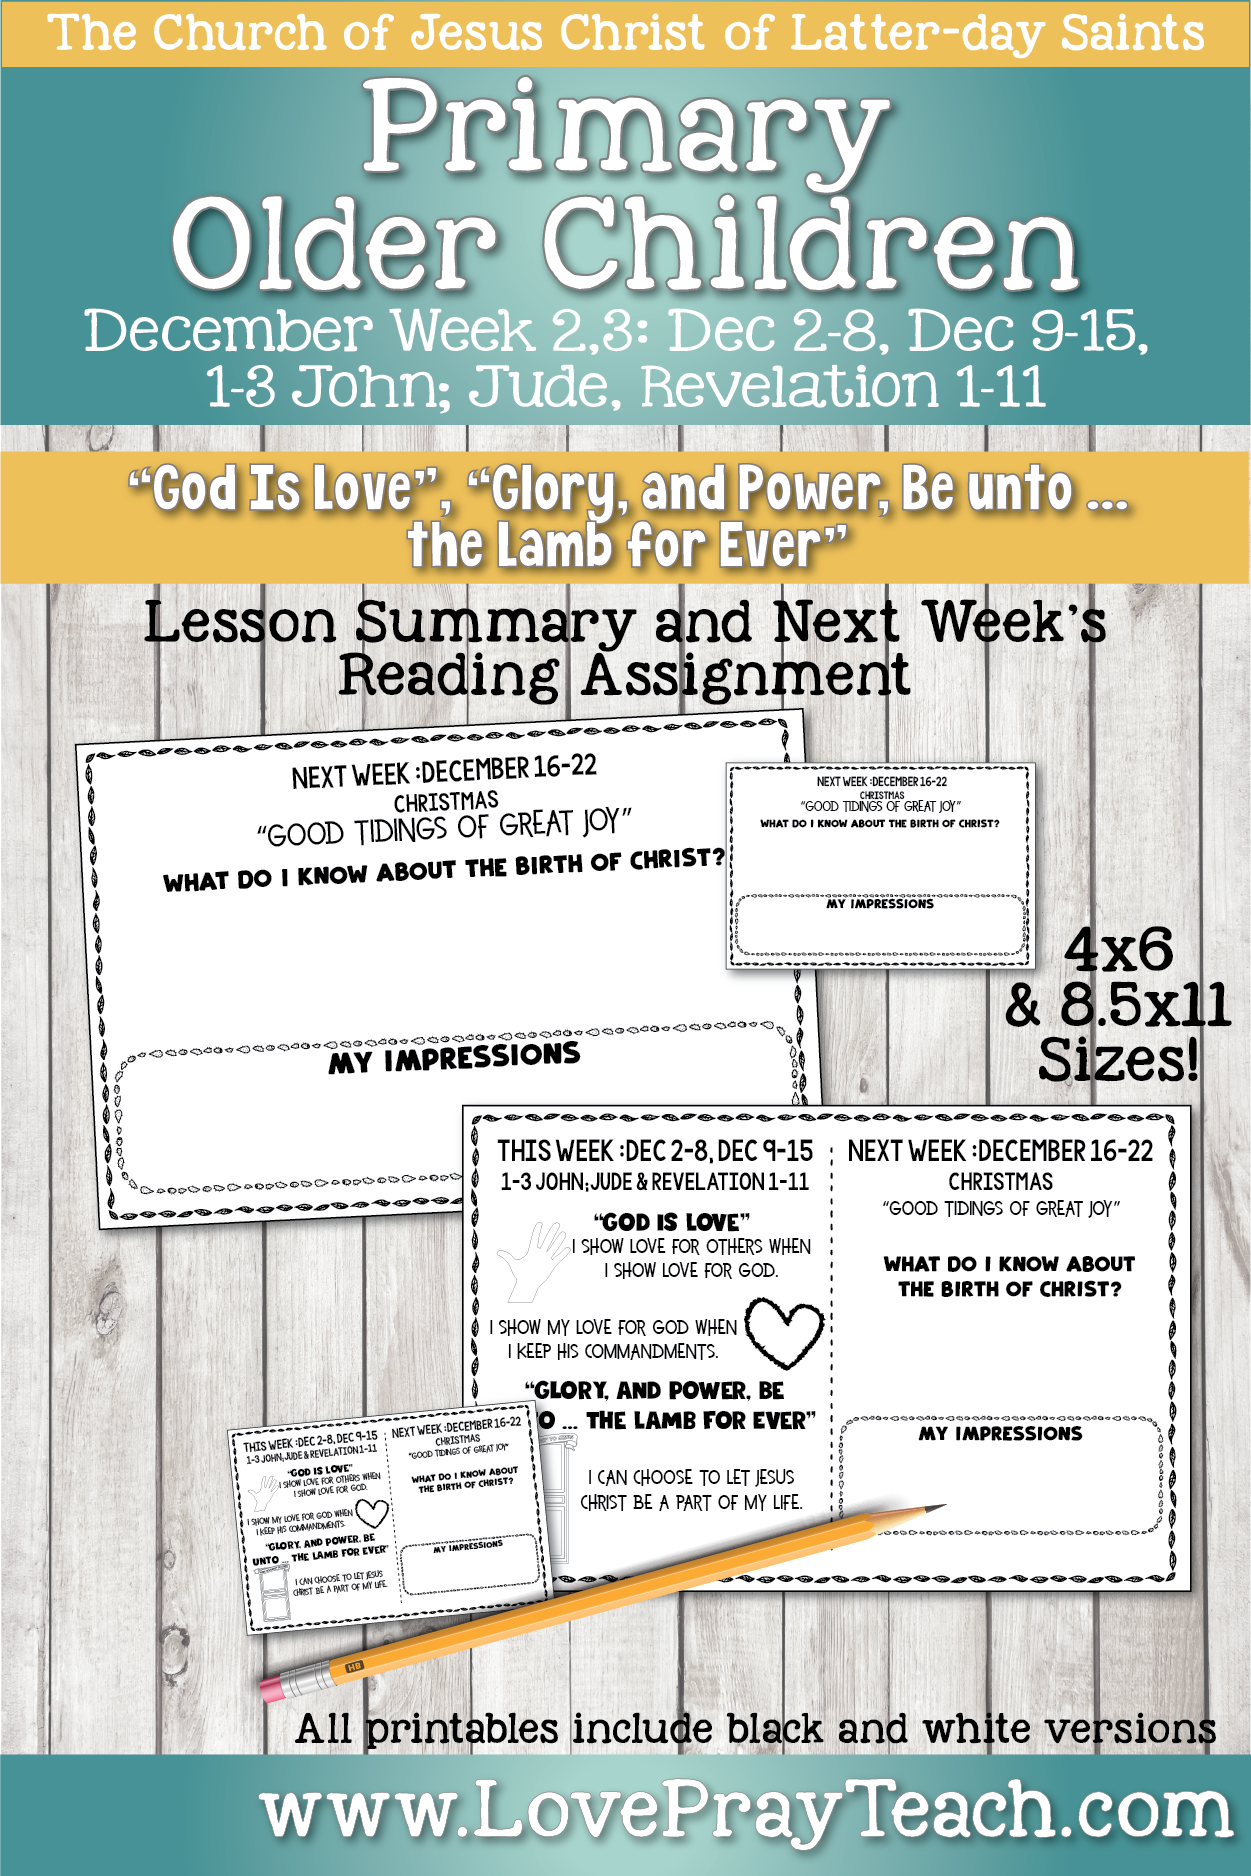 Come, Follow Me for Primary 2019- New Testament, December Week 2,3 Dec 2-8, Dec 9-15, 1-3 John;Jude and Revelations 1-11